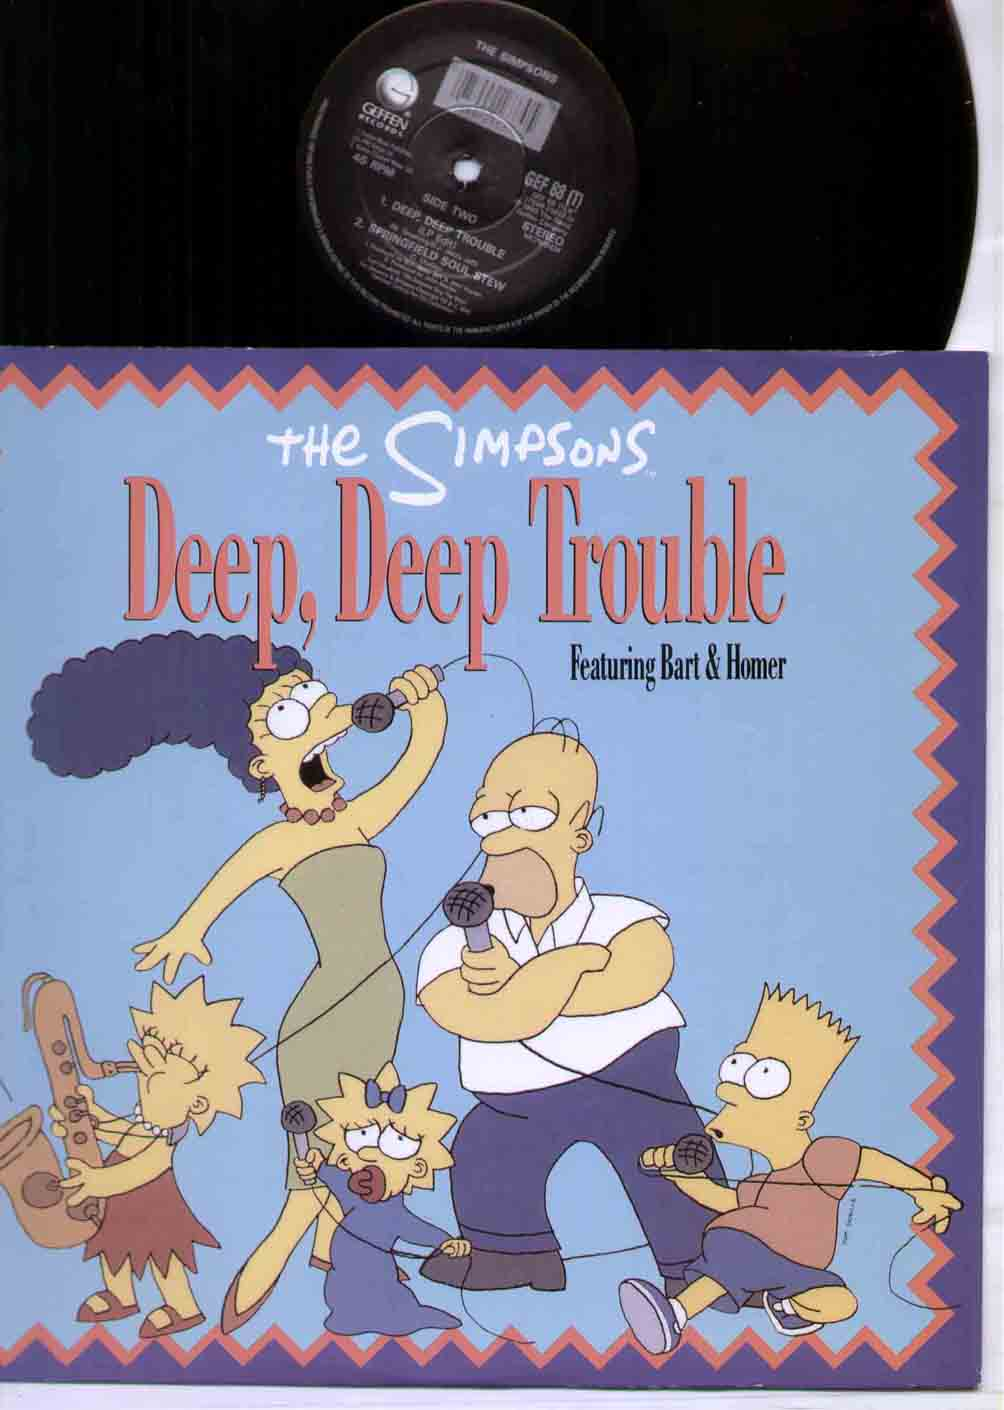 SIMPSONS - DEEP DEEP TROUBLE - 12 inch 45 rpm